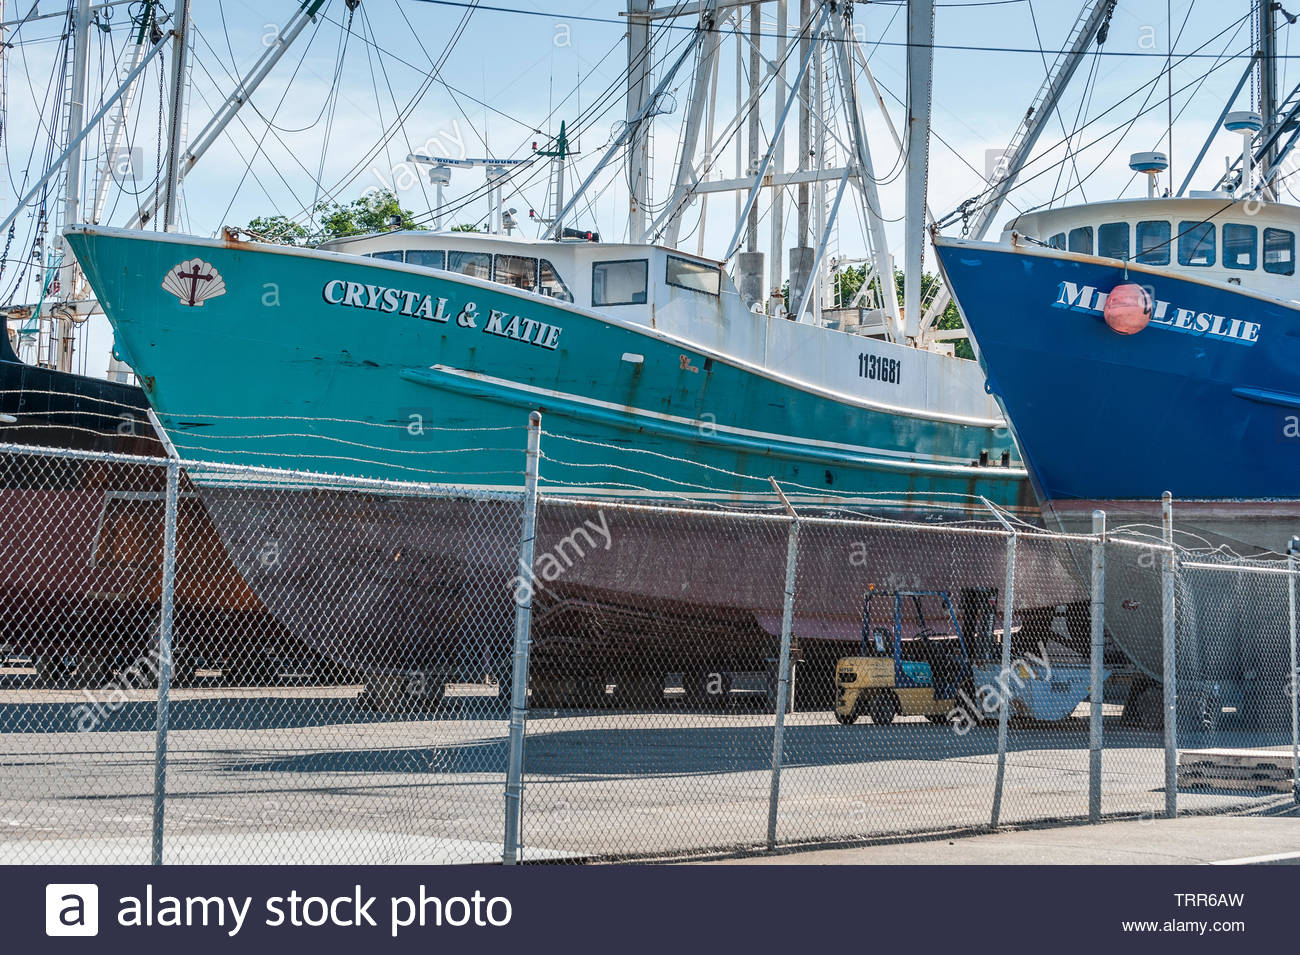 Fairhaven, Massachusetts, USA - June 9, 2019: Commercial fishing vessels Crystal & Katie and Miss Leslie hauled out at Fairhaven Shipyard - Stock Image